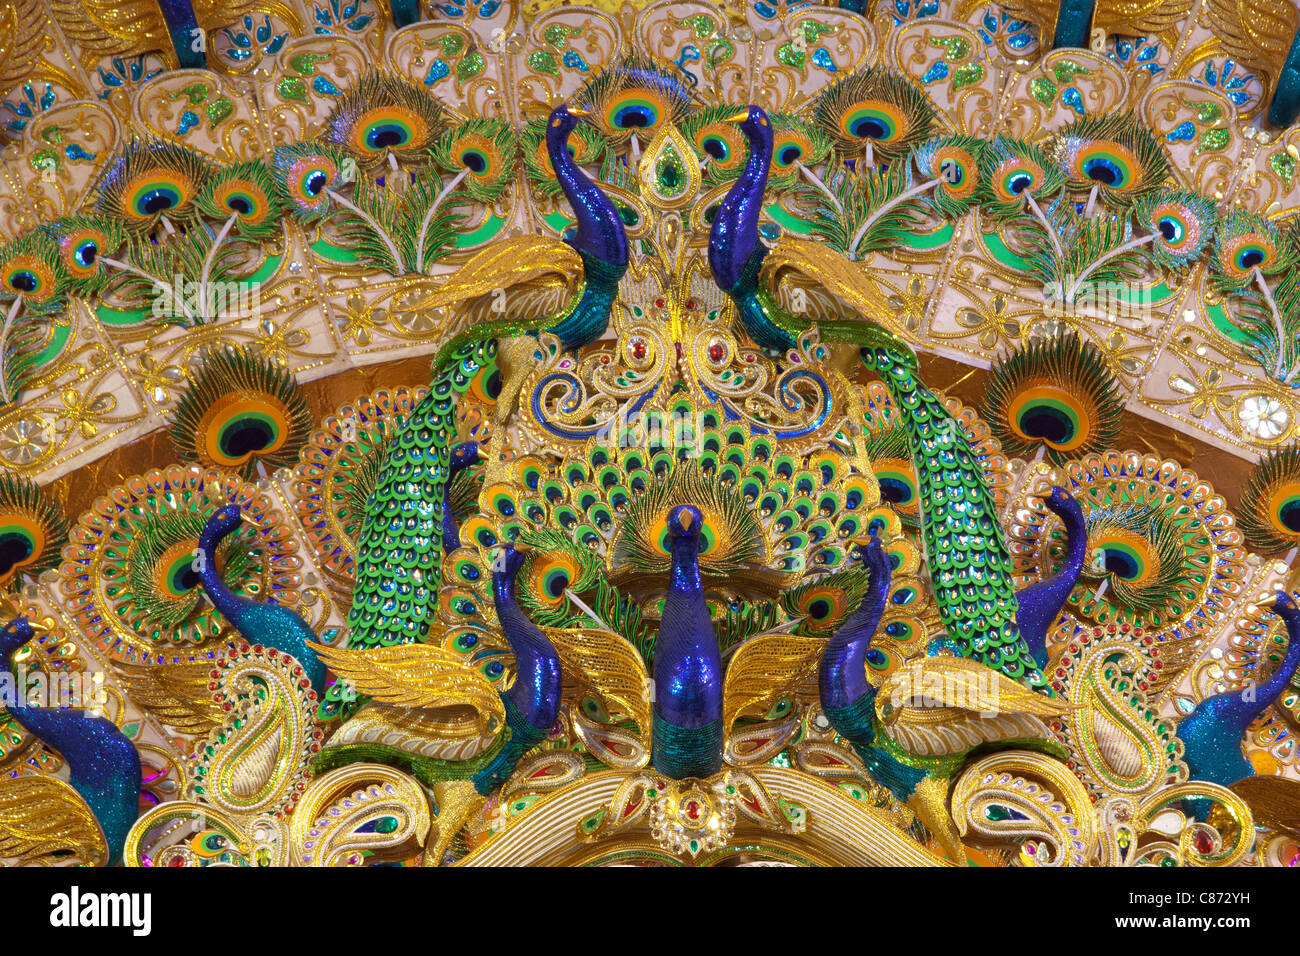 Peacock motif stock photos peacock motif stock images for Salon decor international kolkata west bengal